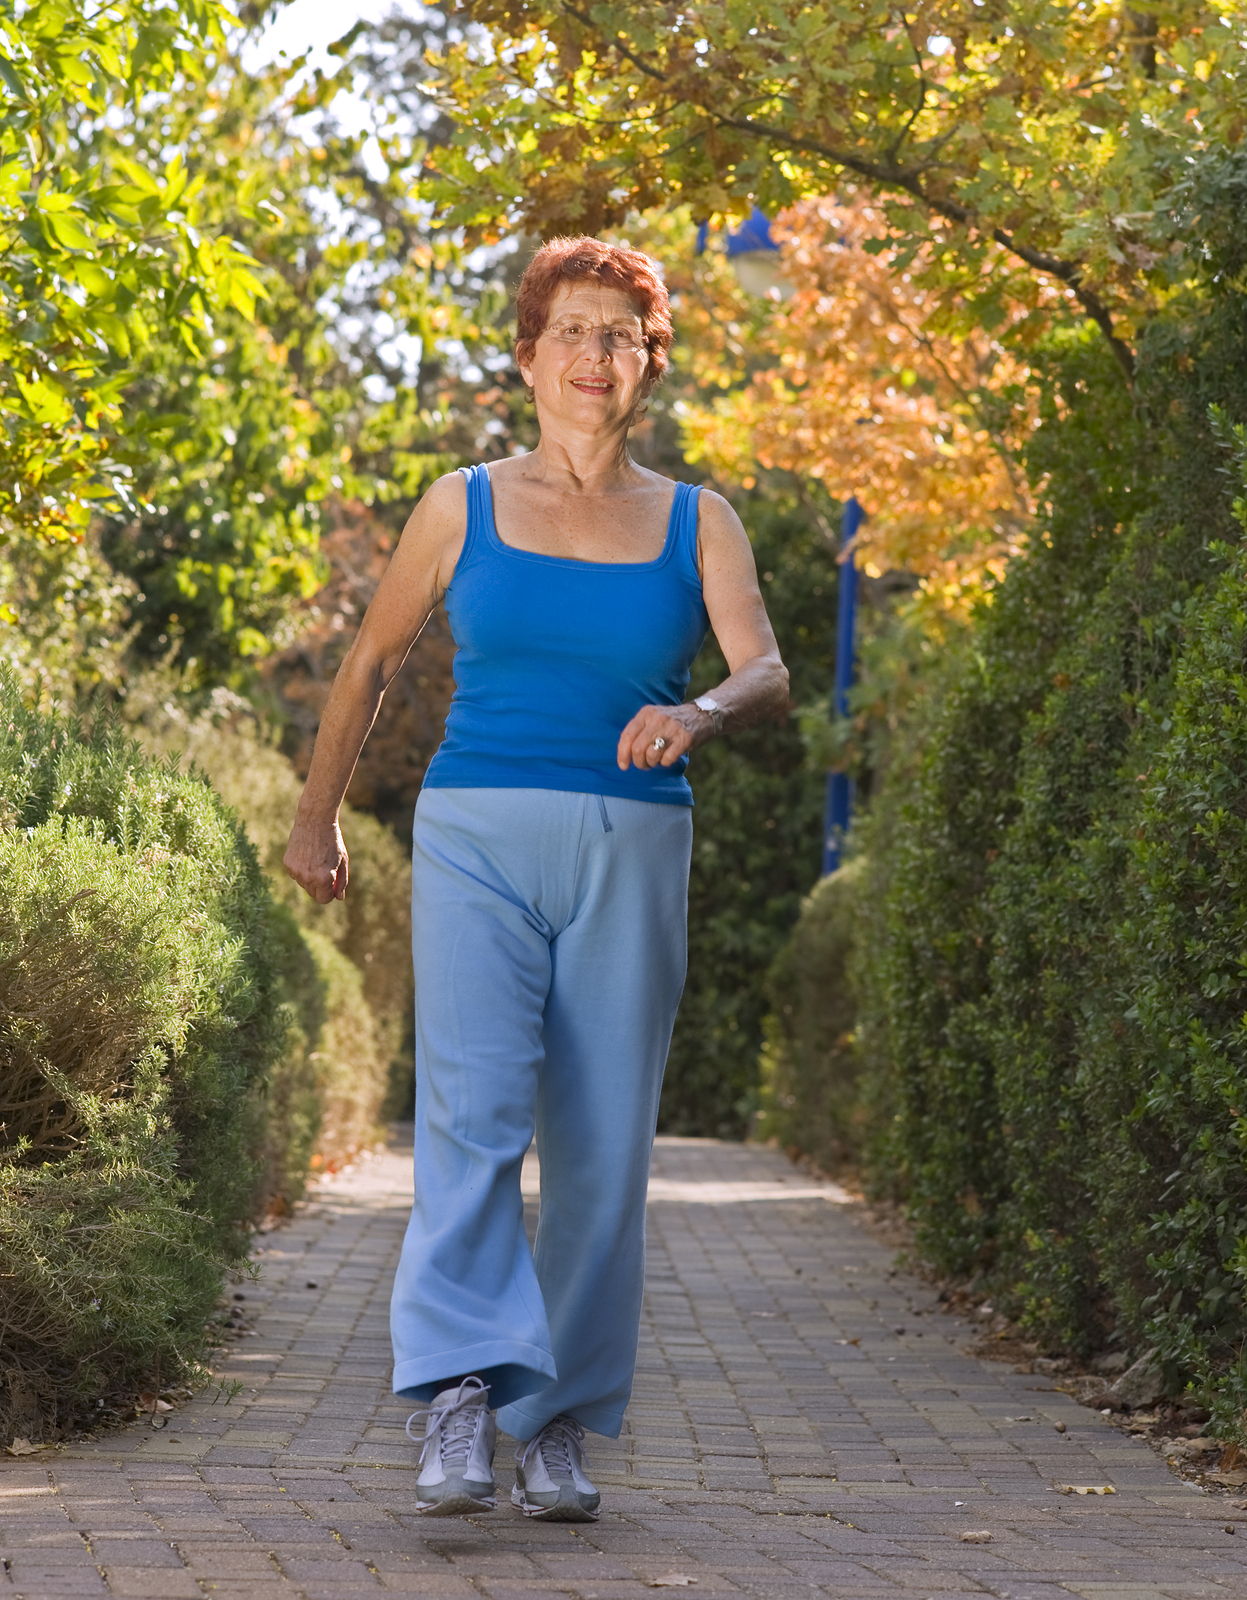 bigstock-senior-women-exercise-walking-19485716.jpg